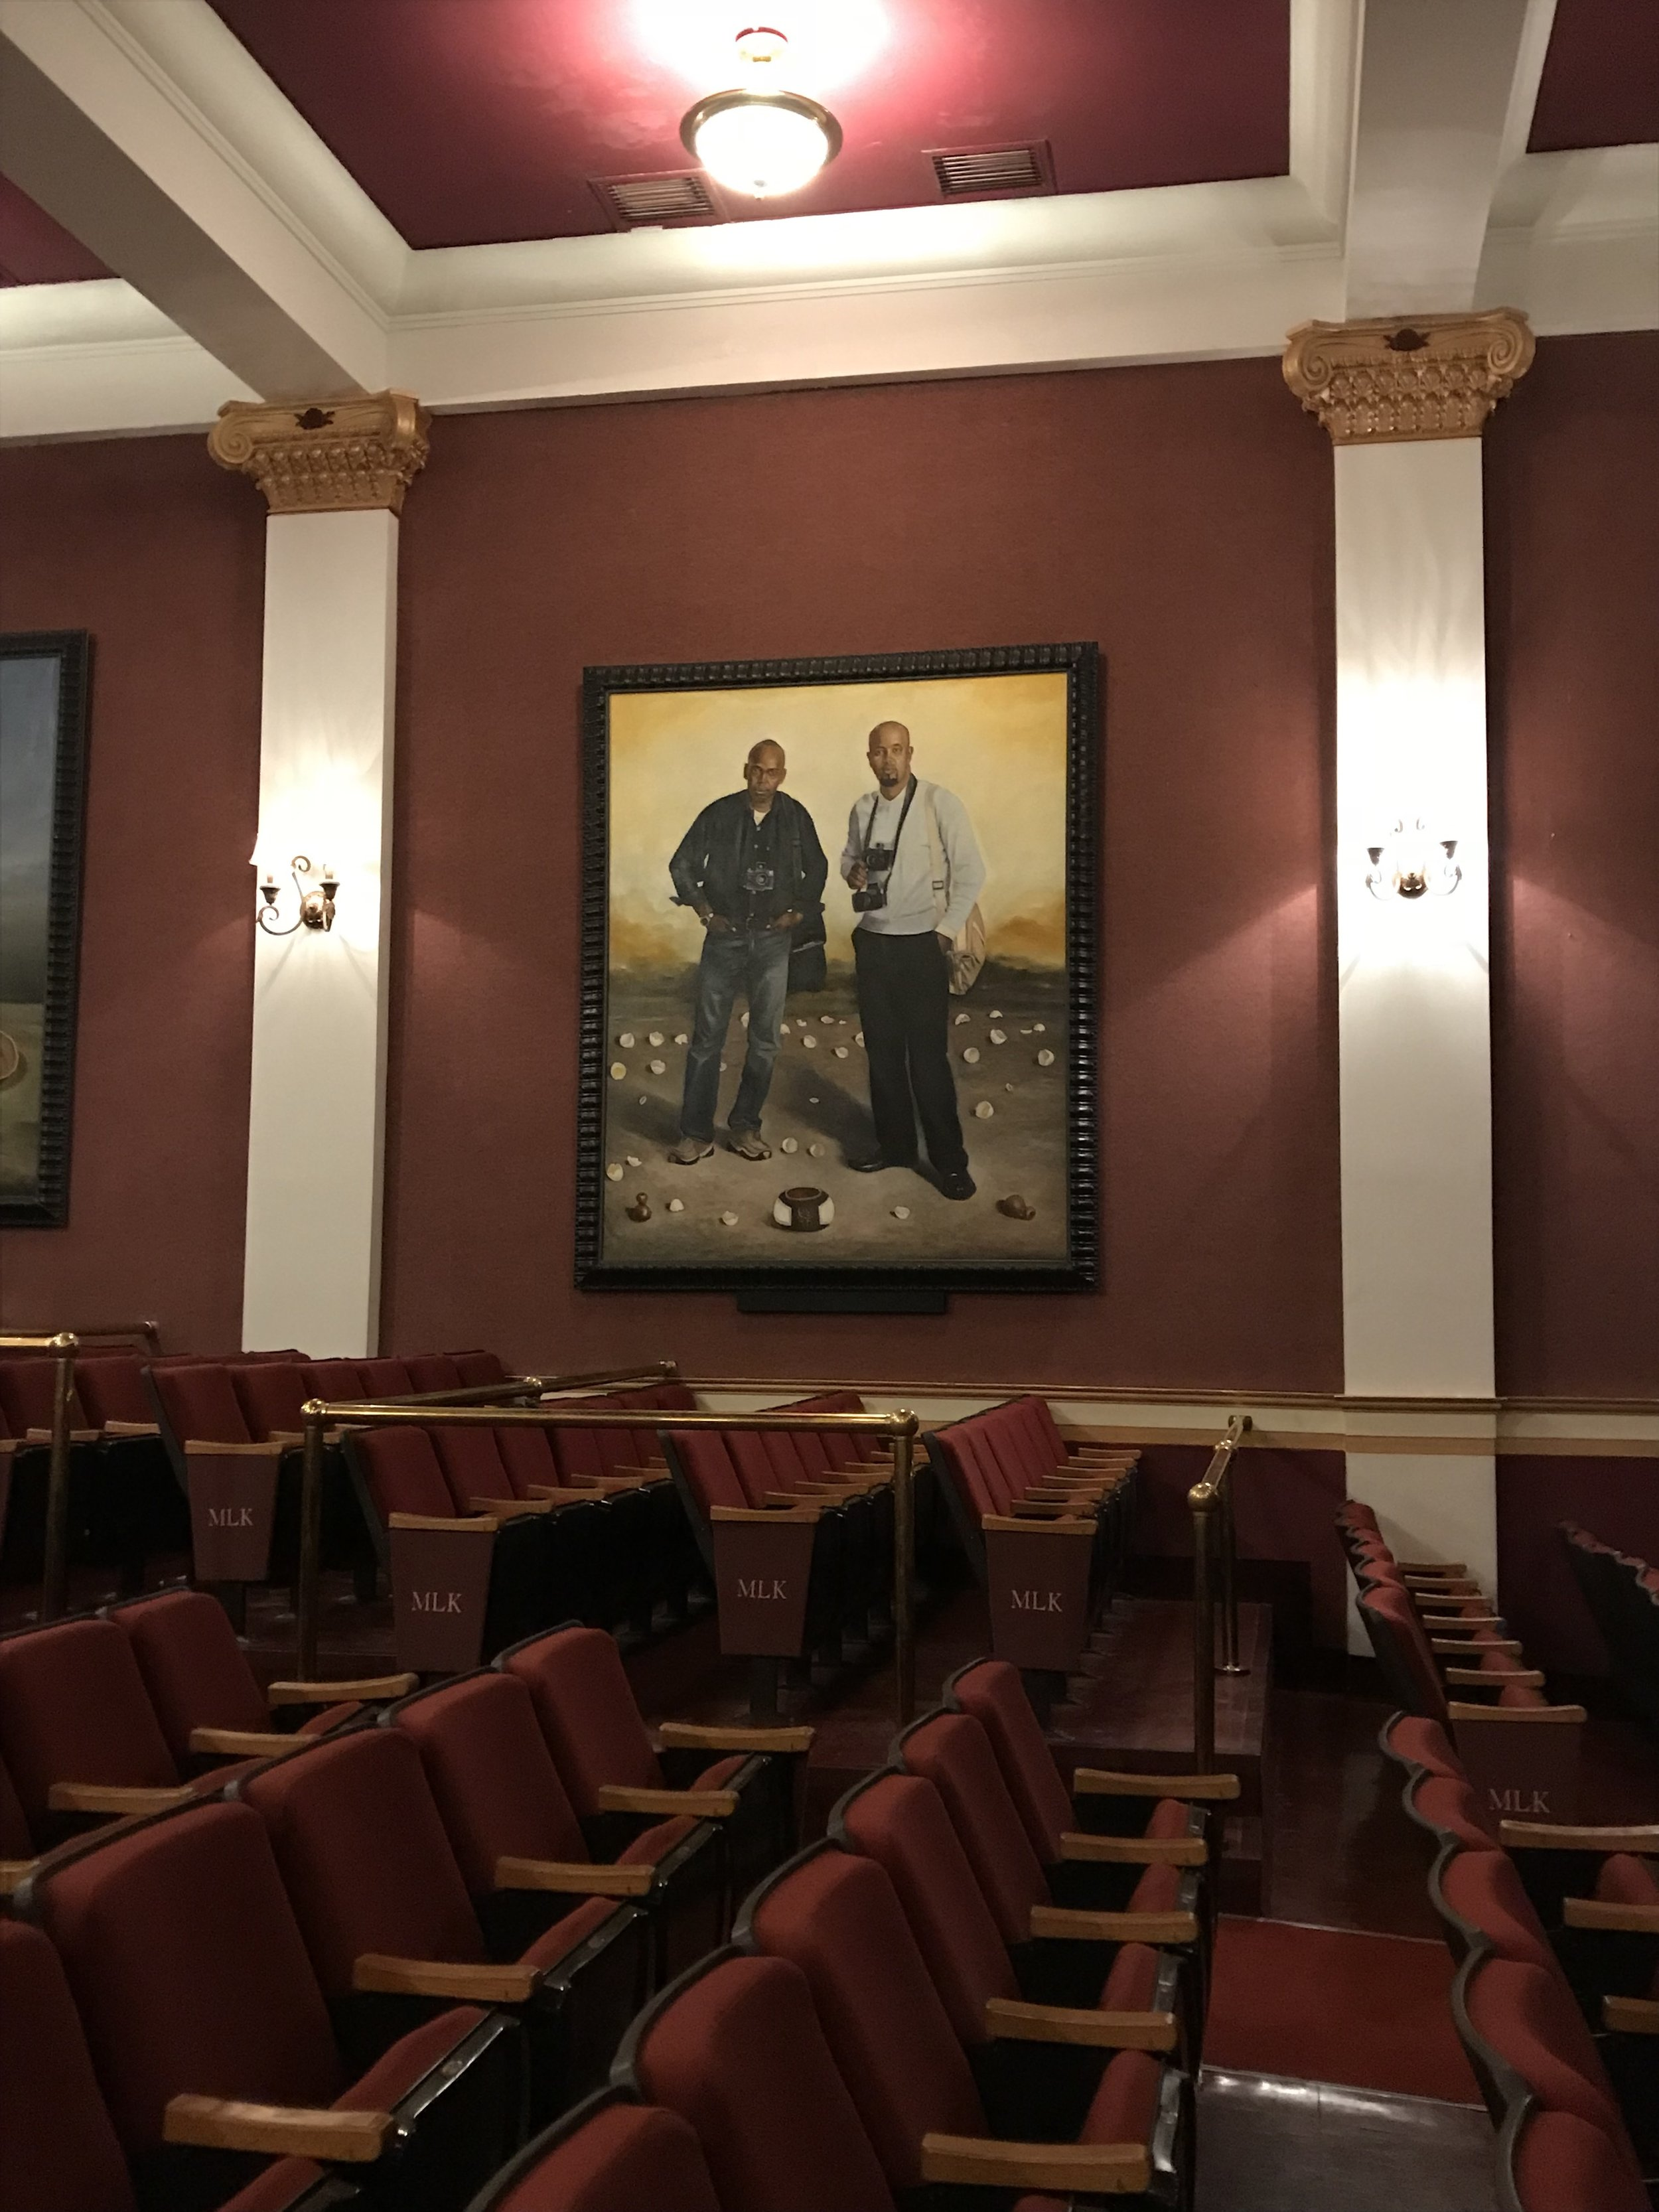 Sitting for a few minutes in the Pythian Theater, we learned a bit more about the people who built this space for as a showcase for community talent. Enormous, life-like contemporary portraits of key artists in the area grace the walls.